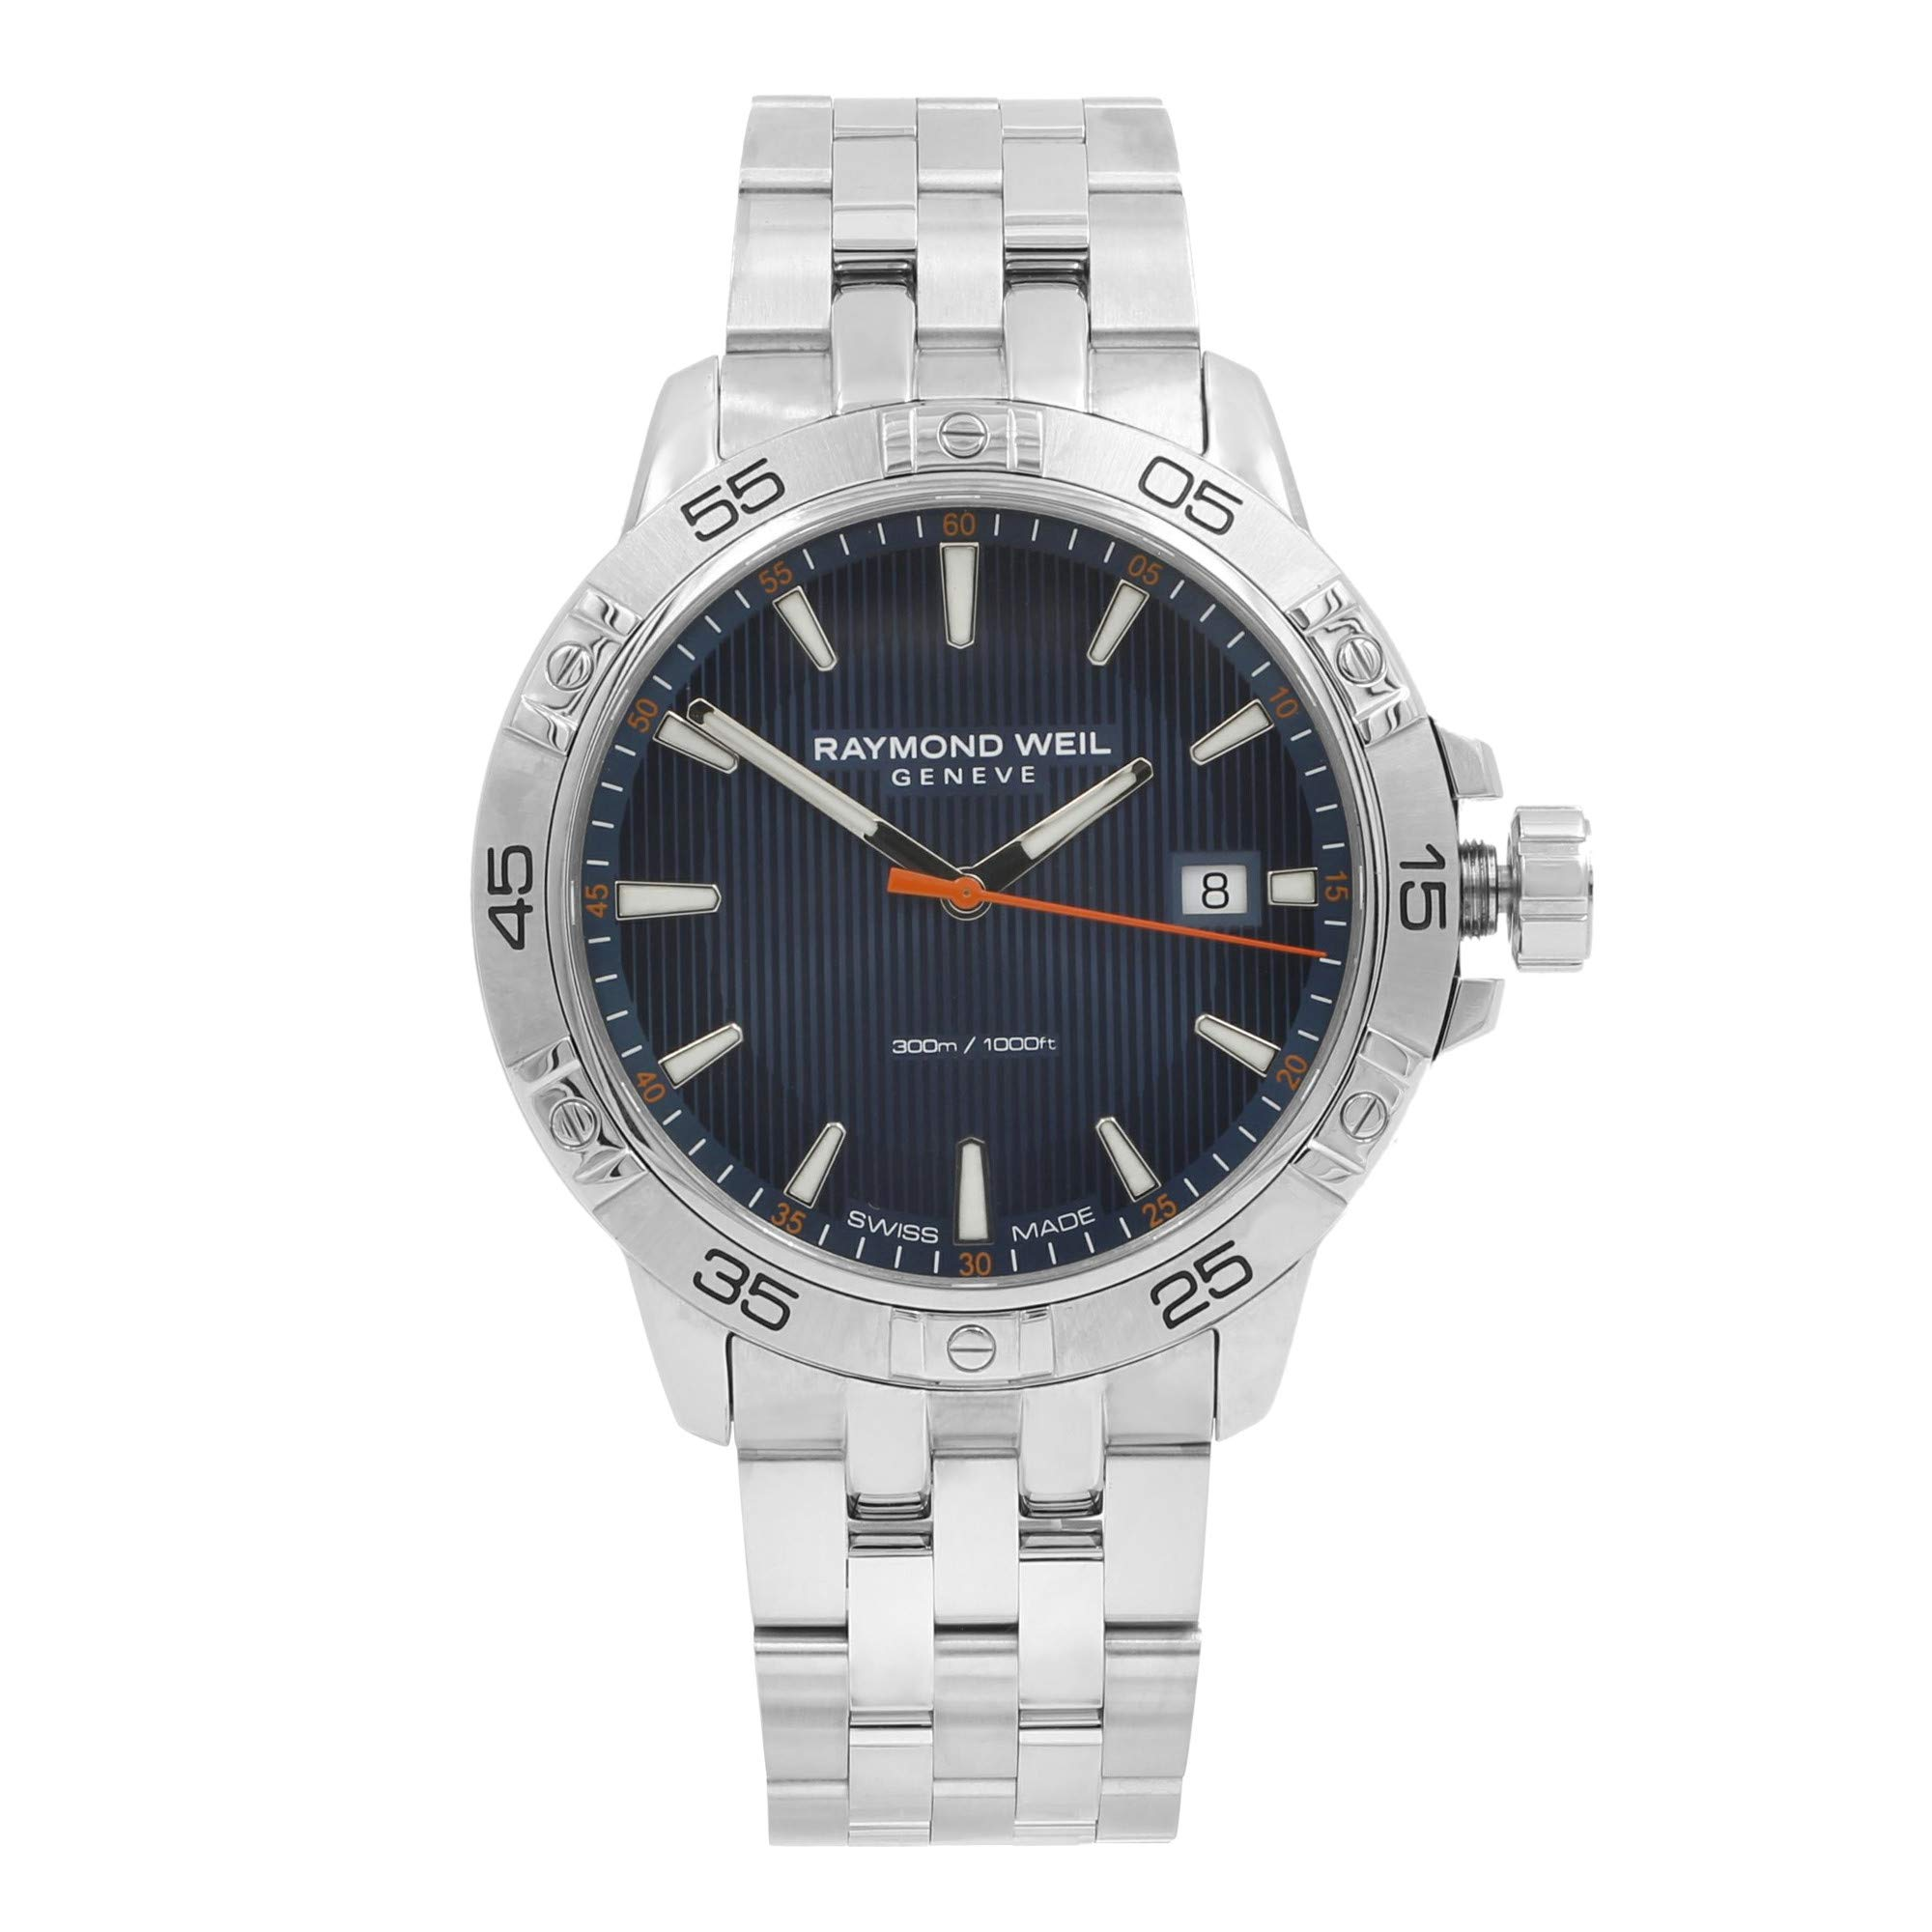 Raymond Weil Tango Quartz Male Watch 8160-ST2-50001 (Certified Pre-Owned) by RAYMOND WEIL (Image #1)